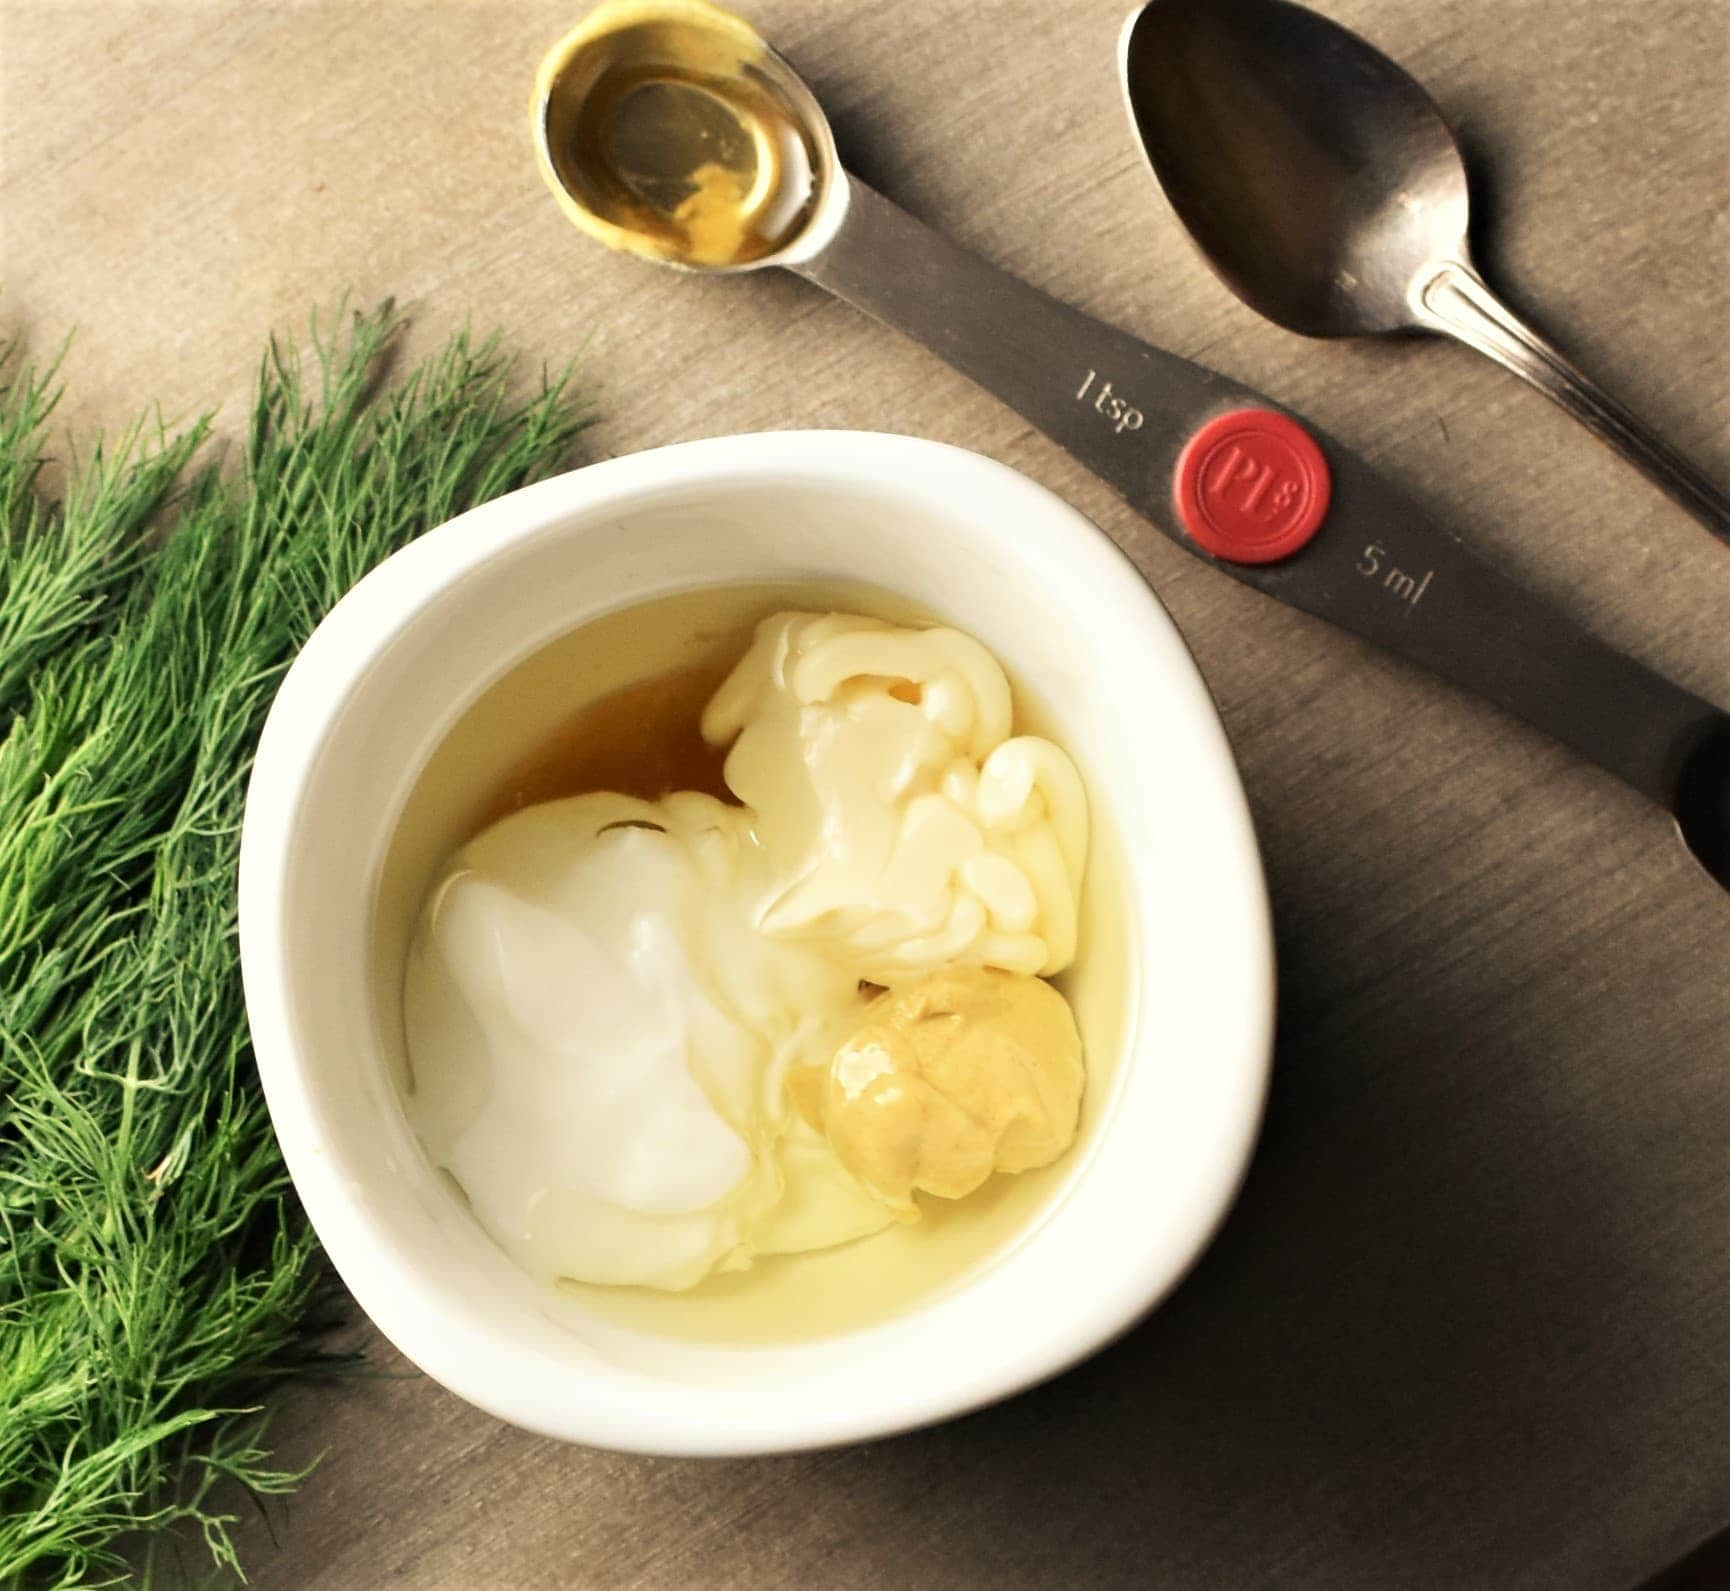 Yogurt and mustard dressing ingredients in white dish, with dill and spoons in background.